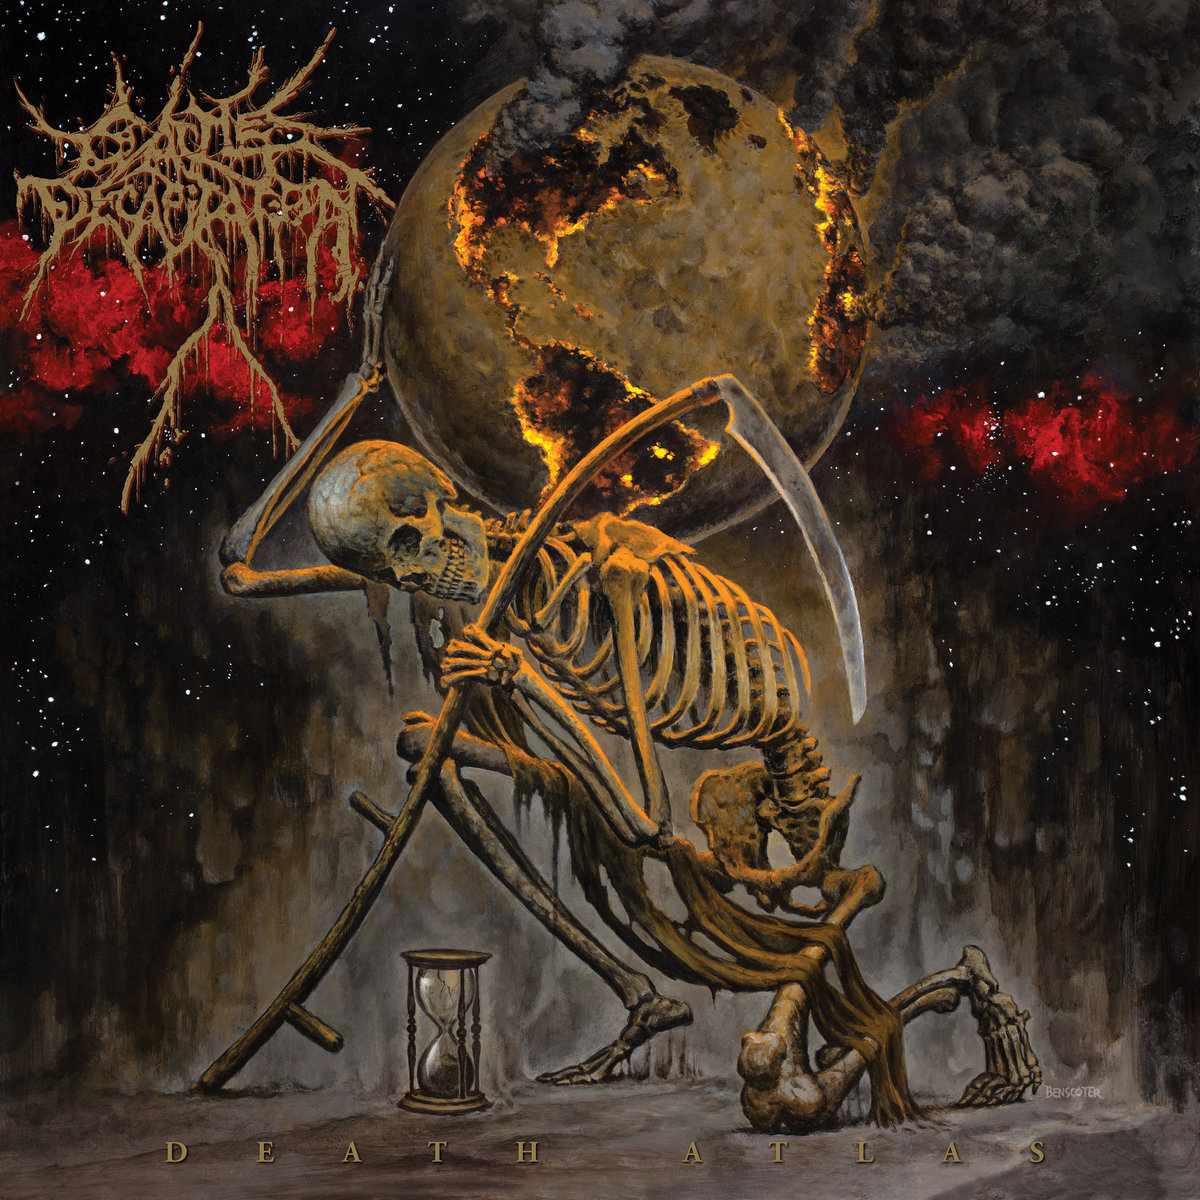 Cattle Decapitation  「Death Atlas」